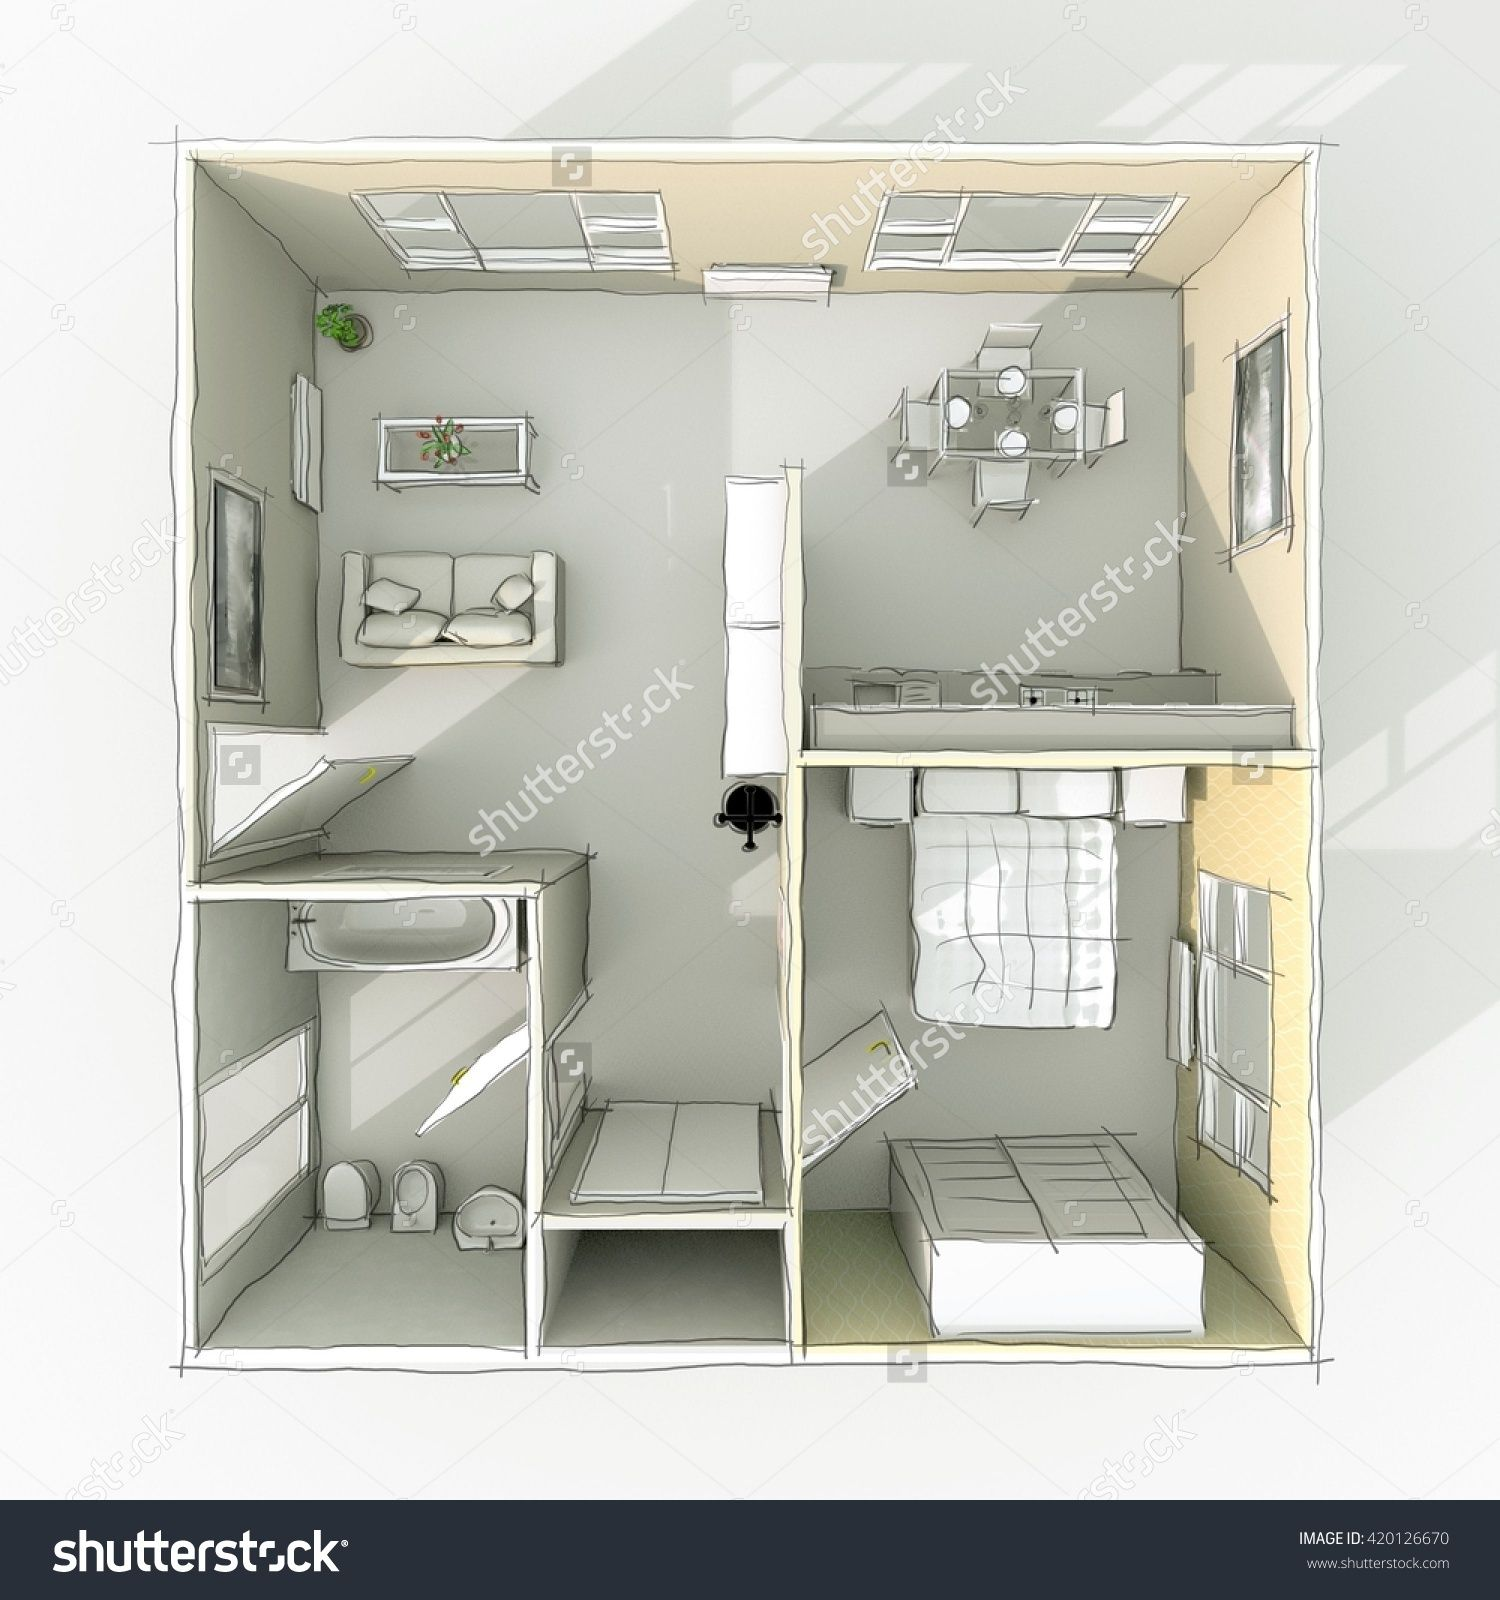 3d Rendering Freehand Sketch Home Apartment With Furnishings Room Bathroom Bedroom Kitchen Entrance